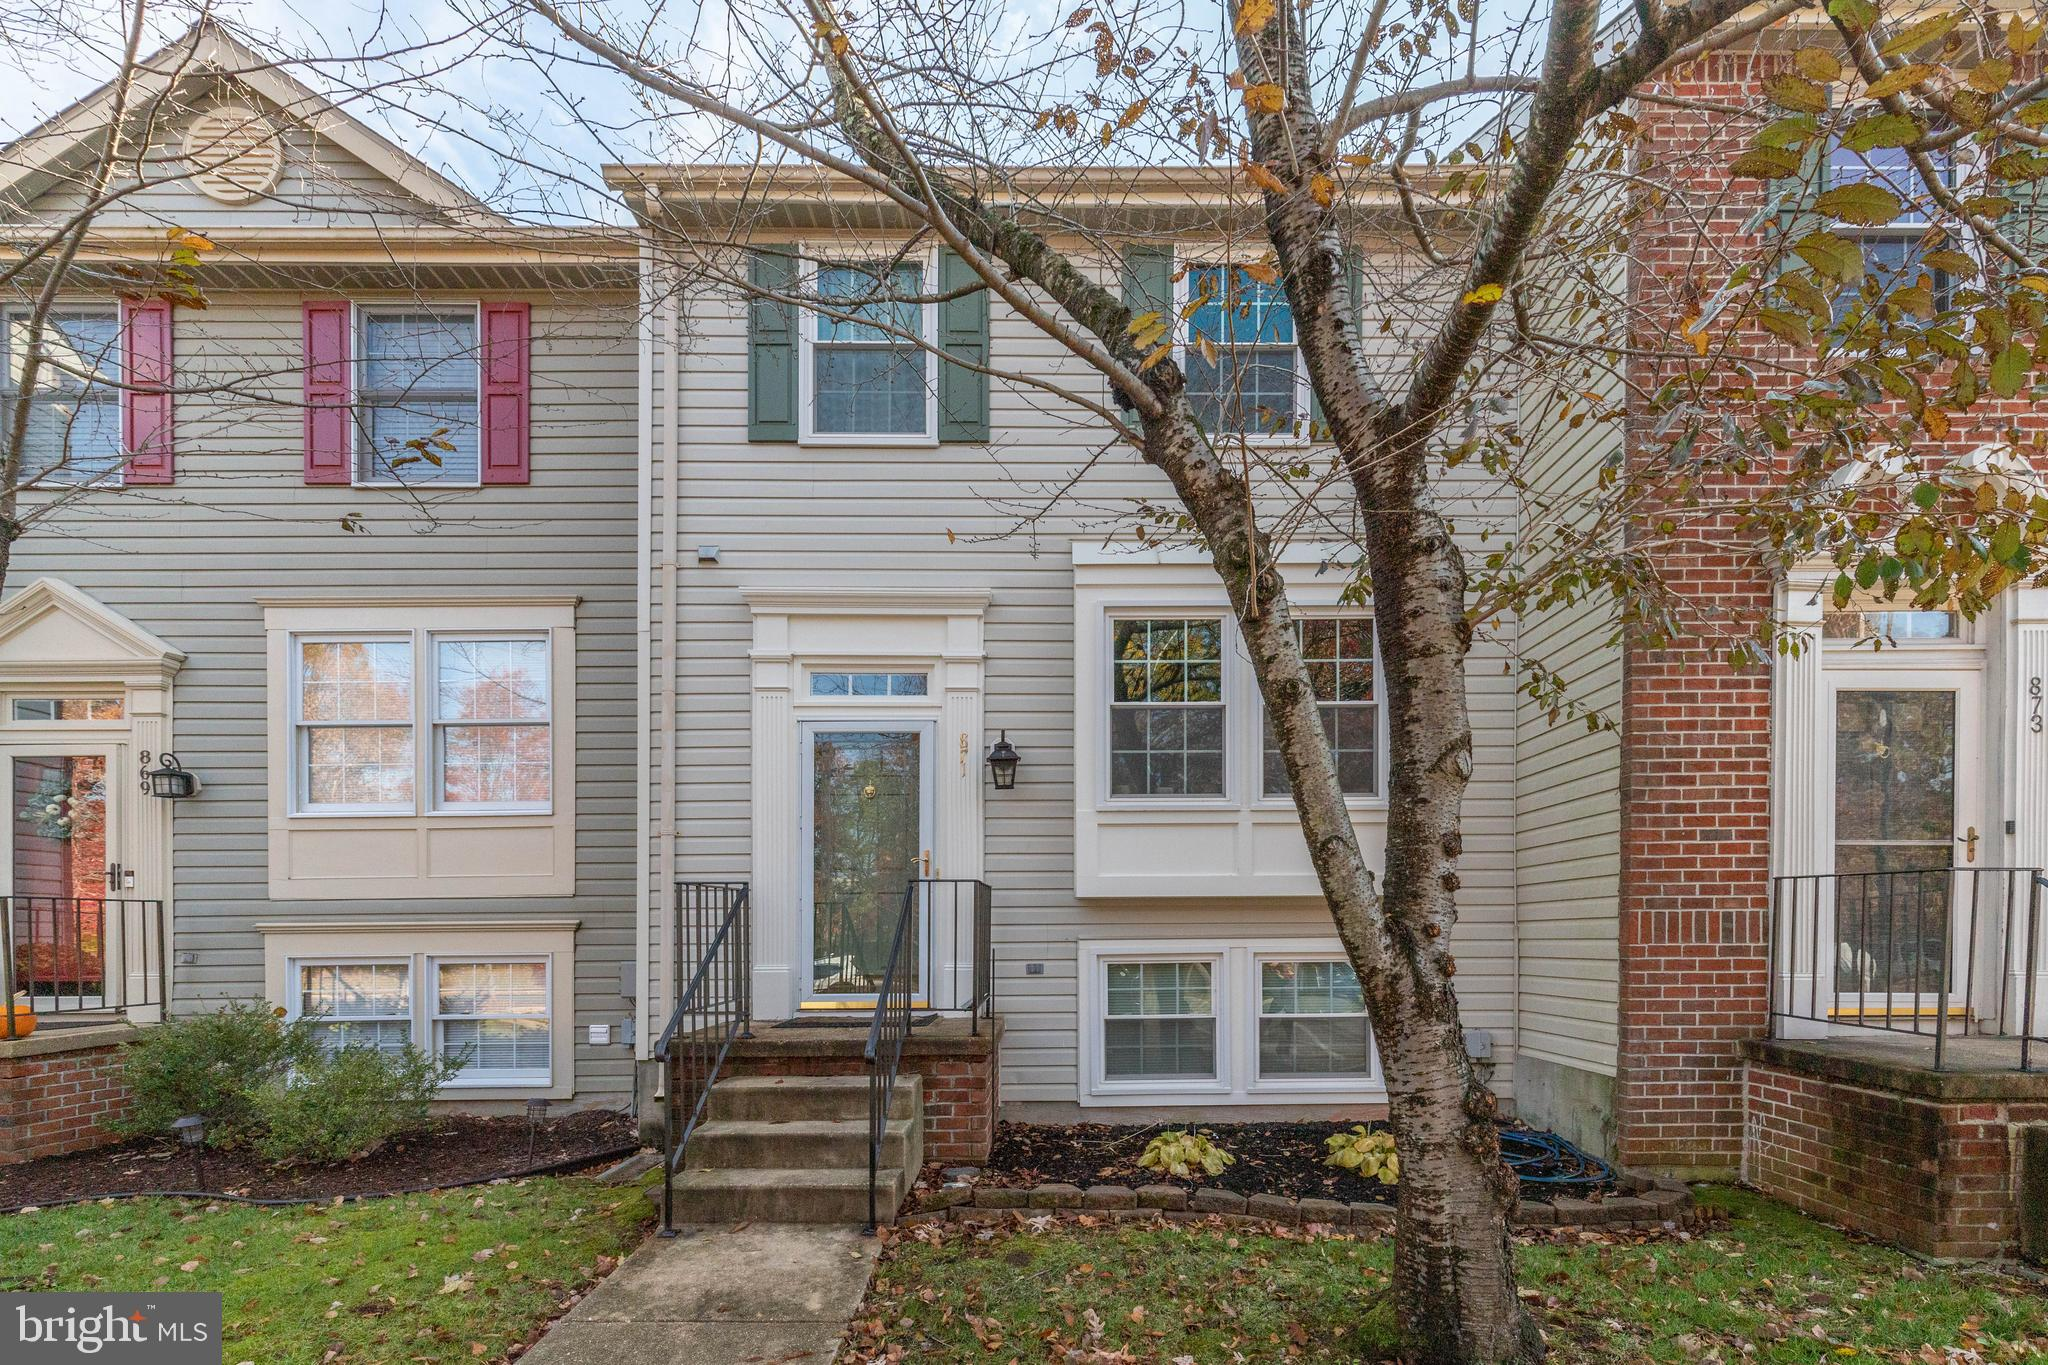 871 CHESTNUTVIEW COURT, CHESTNUT HILL COVE, MD 21226